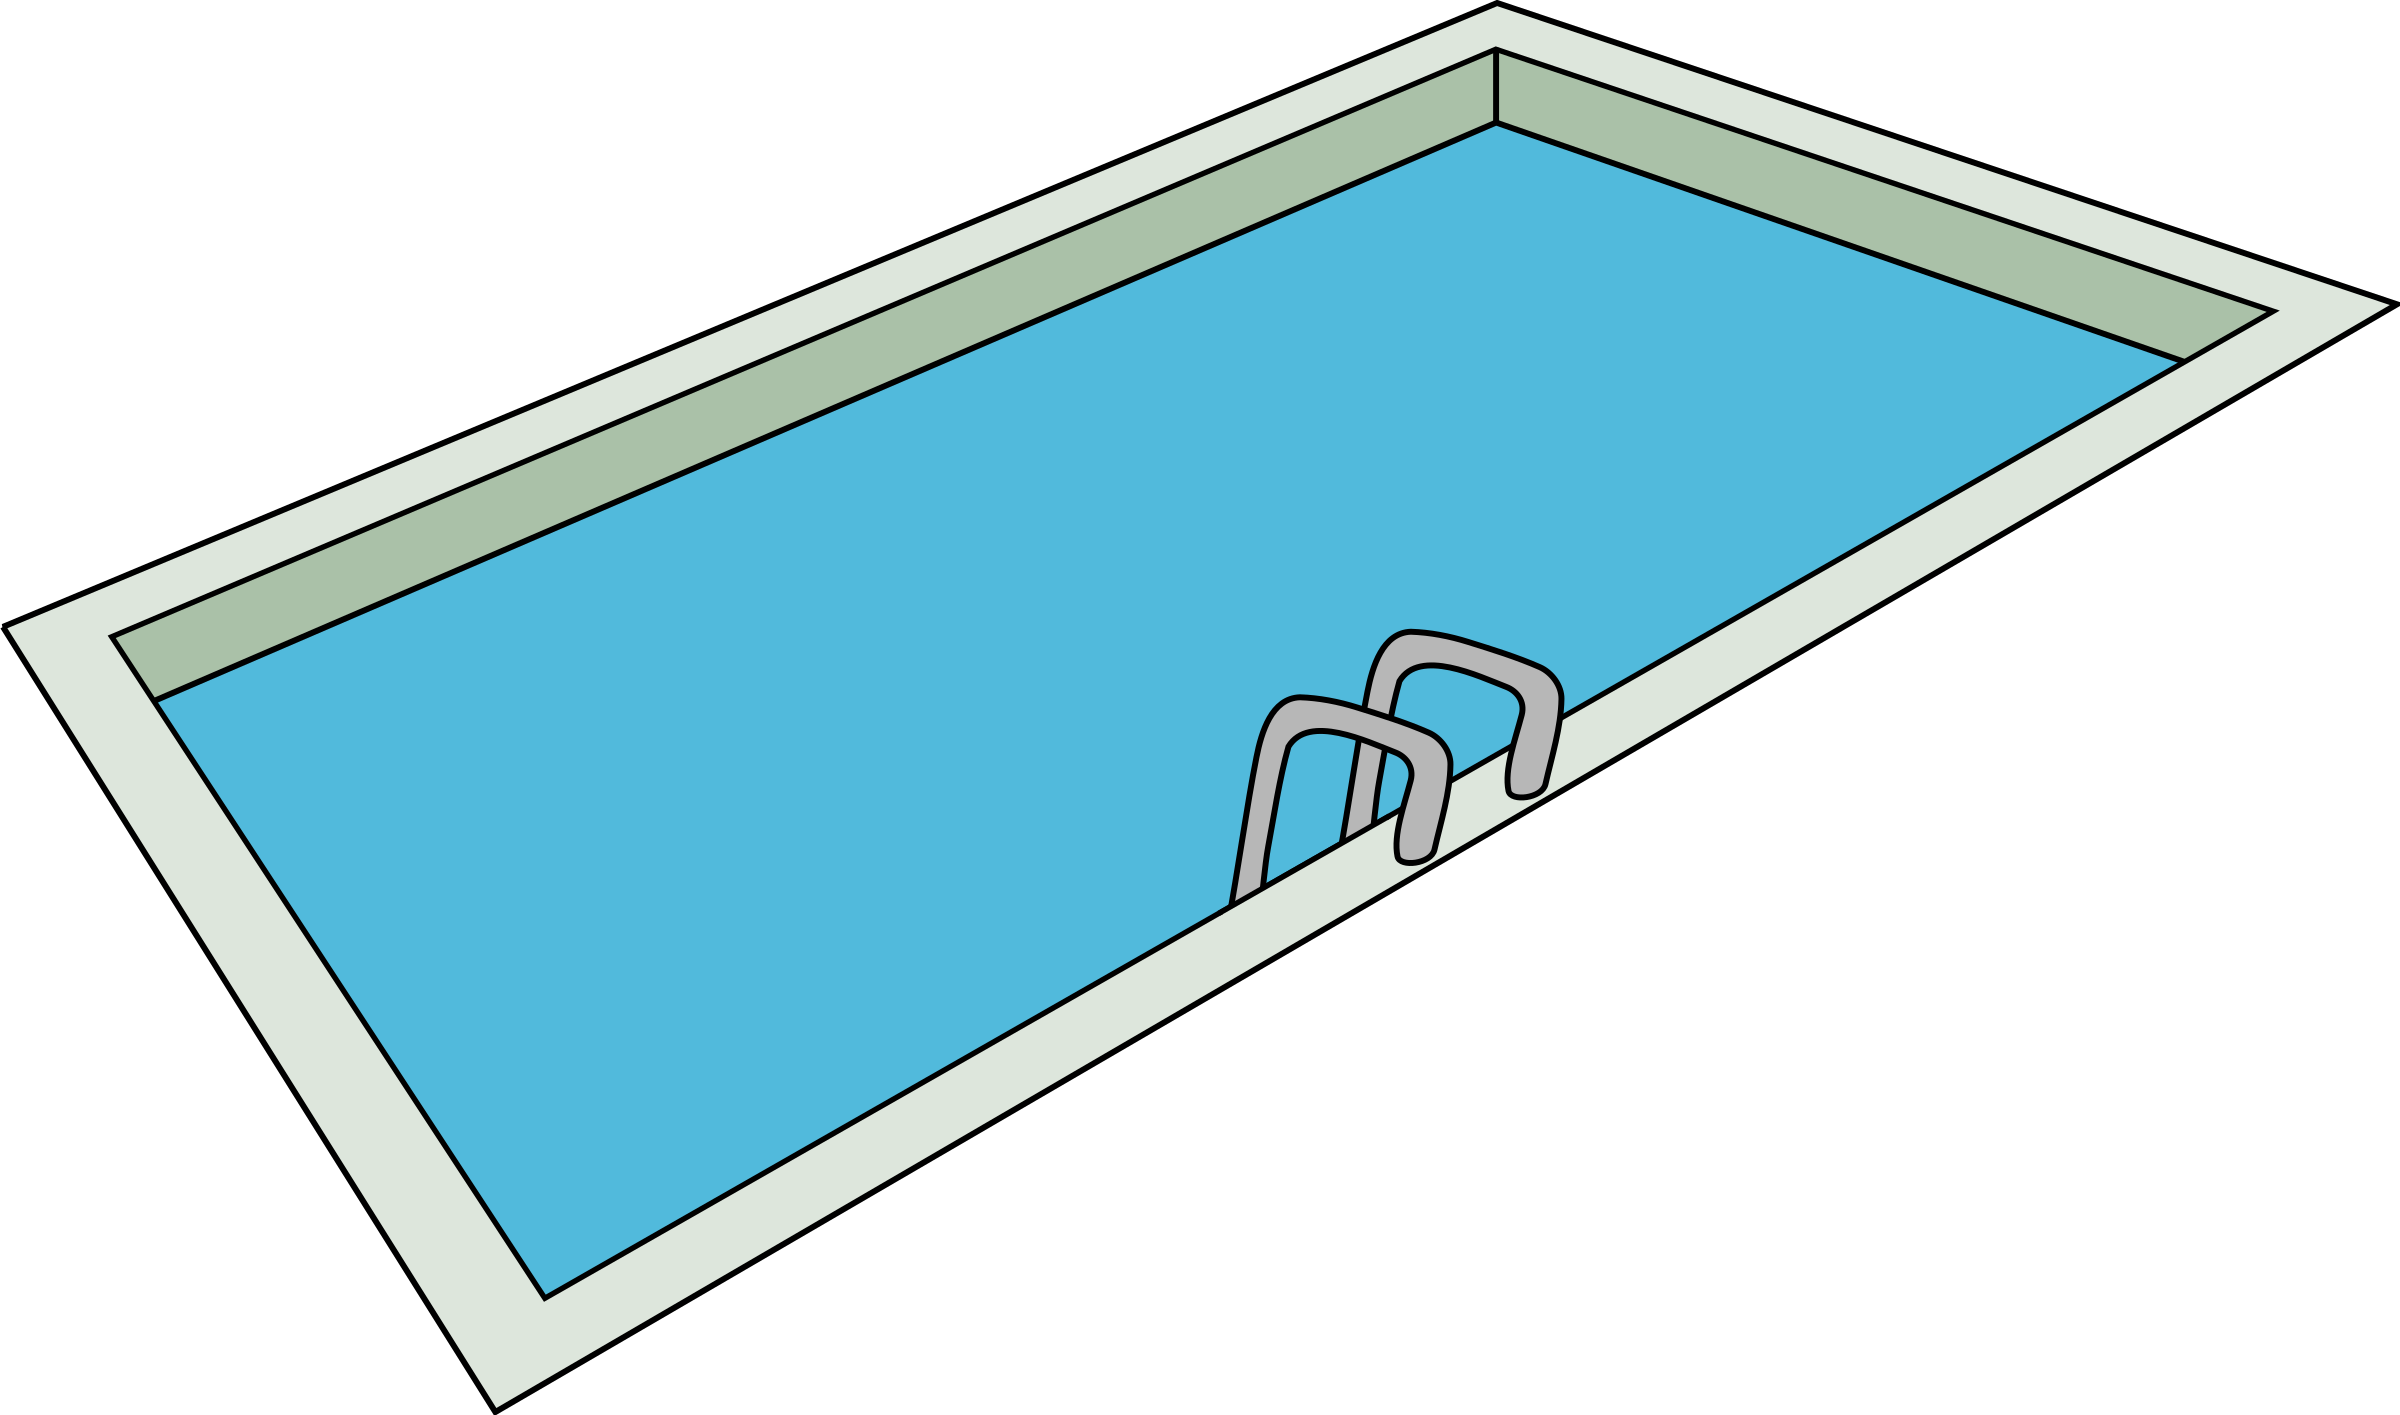 Square clipart swimming pool. At getdrawings com free